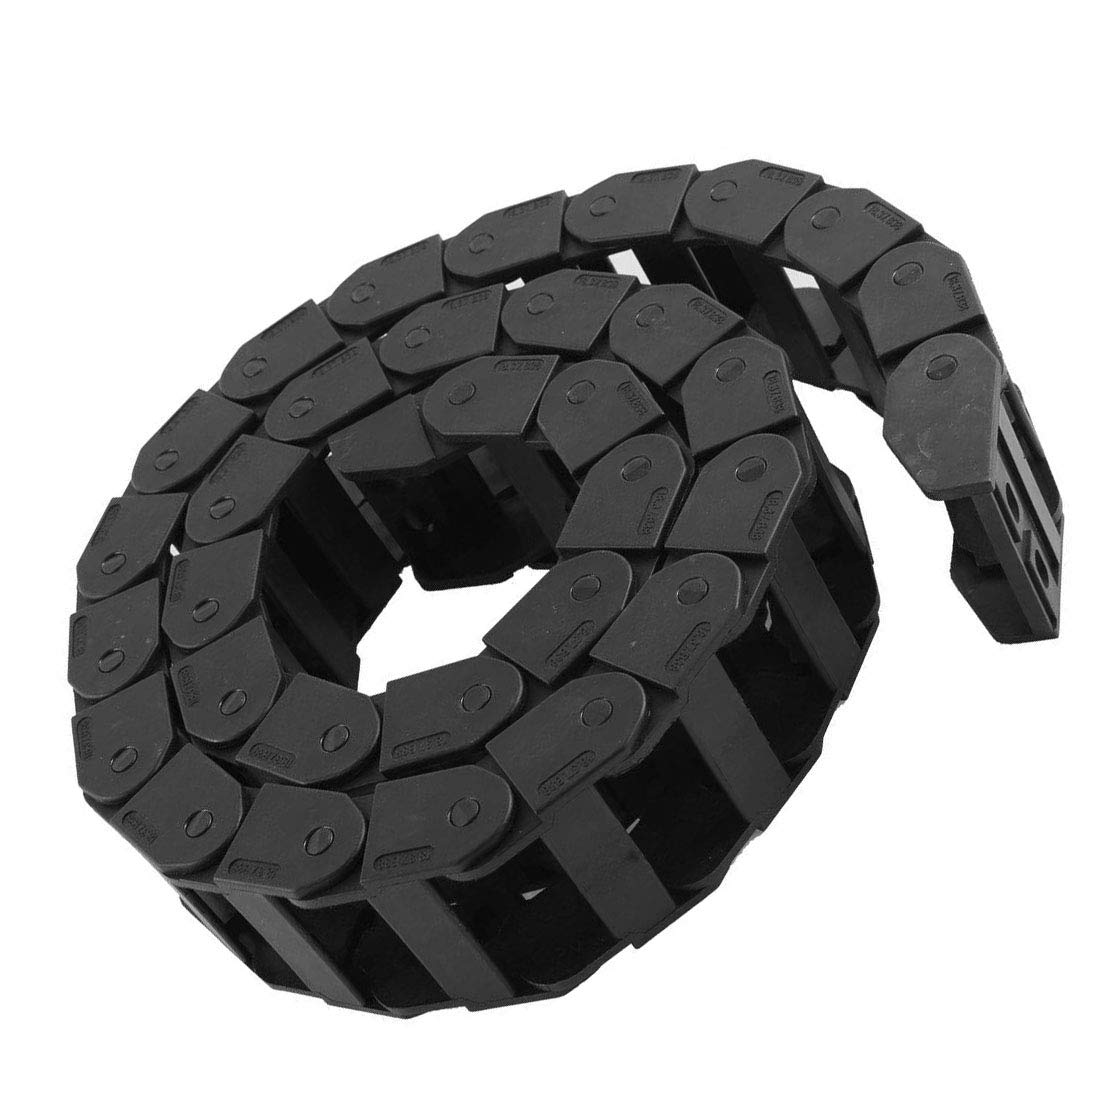 Aodesy 1M//3.3 Ft Plastic Cable Wire Carrier Drag Chain R38 18mm x 37mm Flexible Nested Semi Closed Drag Chain for CNC Router Shenzhenshiaodesiwujinjidianyouxiangongsi 5559007215